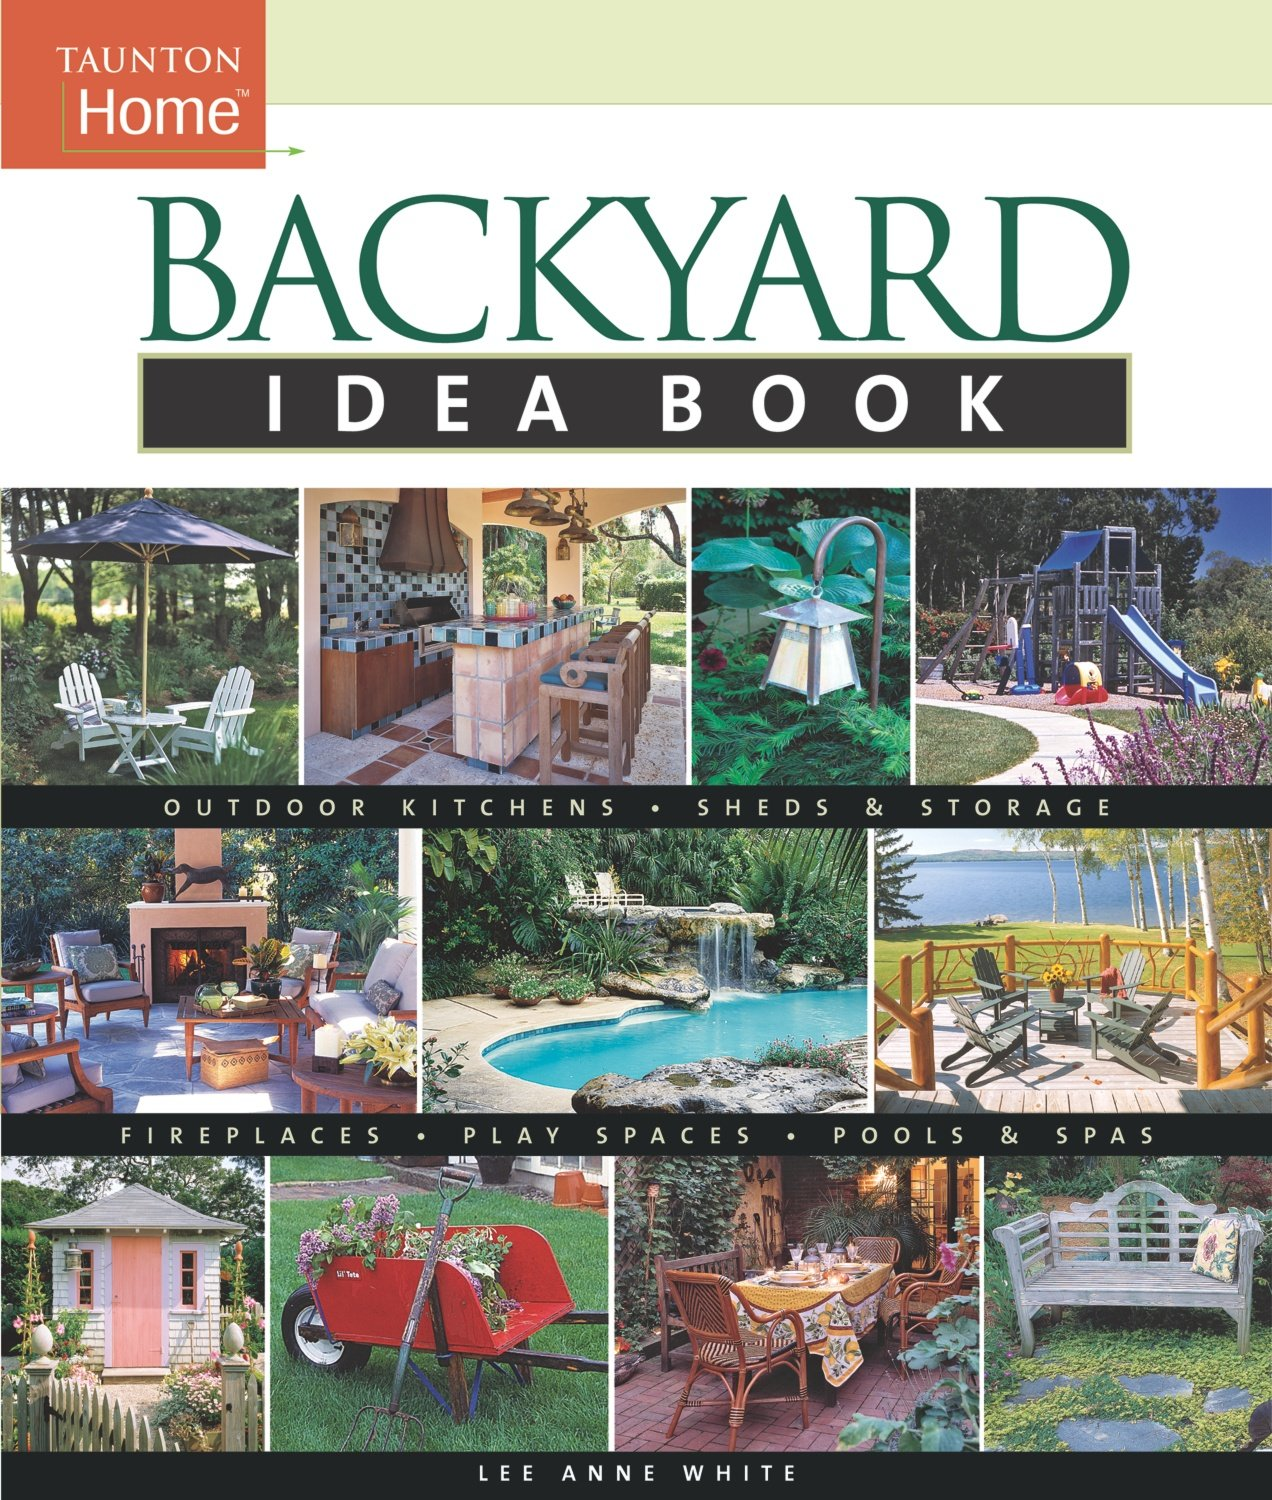 Backyard Idea Book: Outdoor Kitchens, Sheds & Storage, Fireplaces, Play Spaces, Pools & Spas (Taunton Home Idea Books)